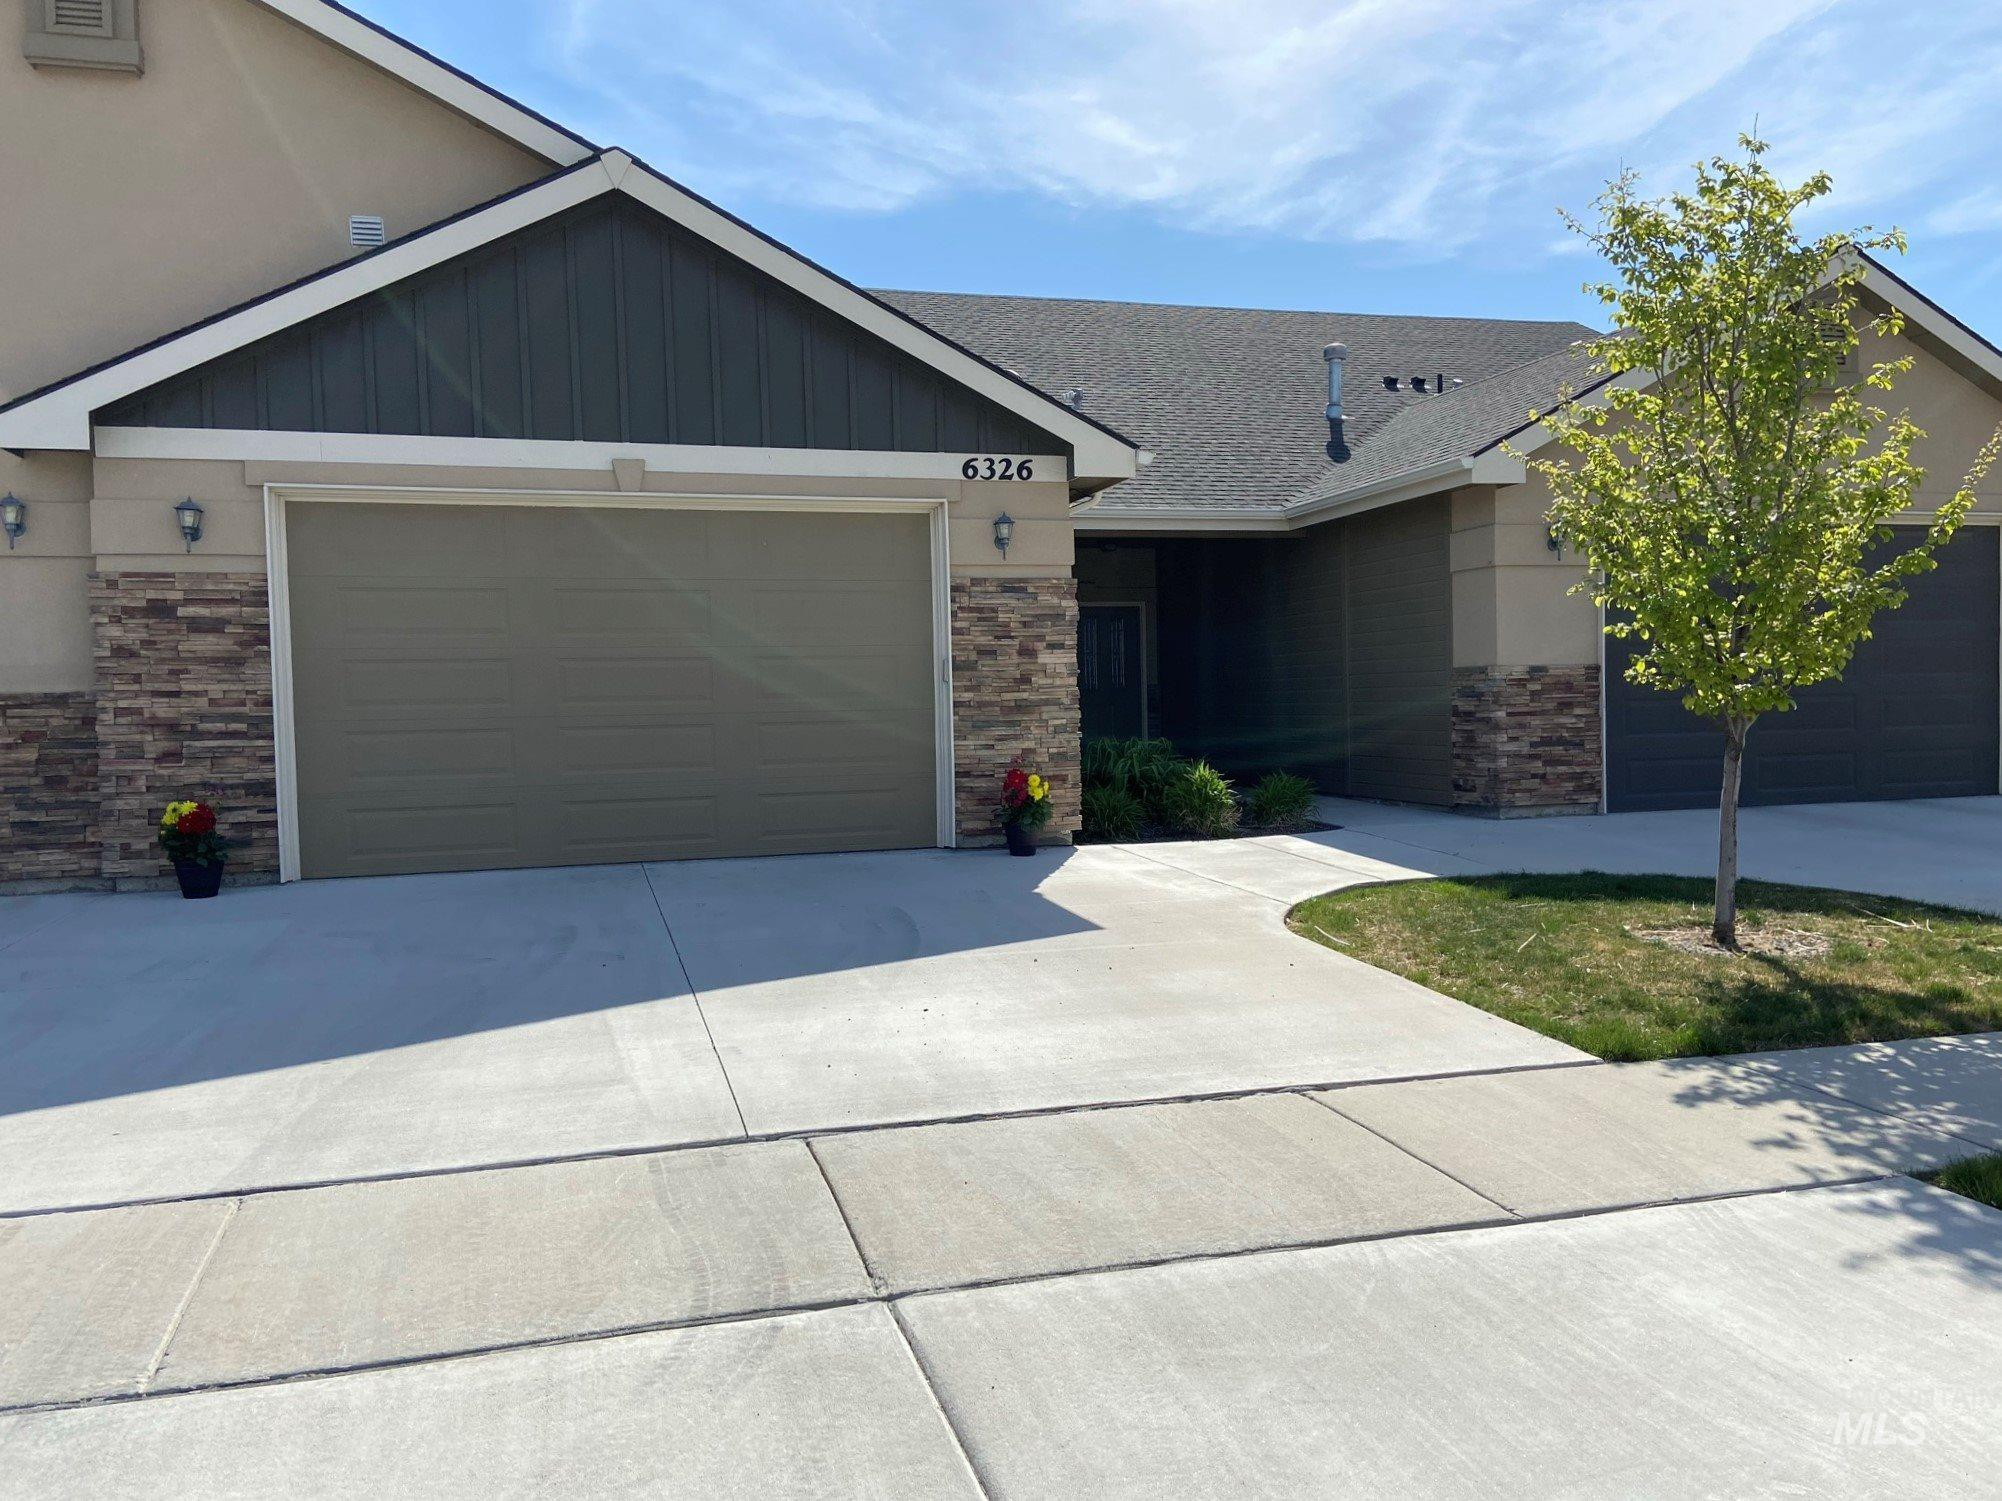 6326 N Maximus Property Photo - Meridian, ID real estate listing